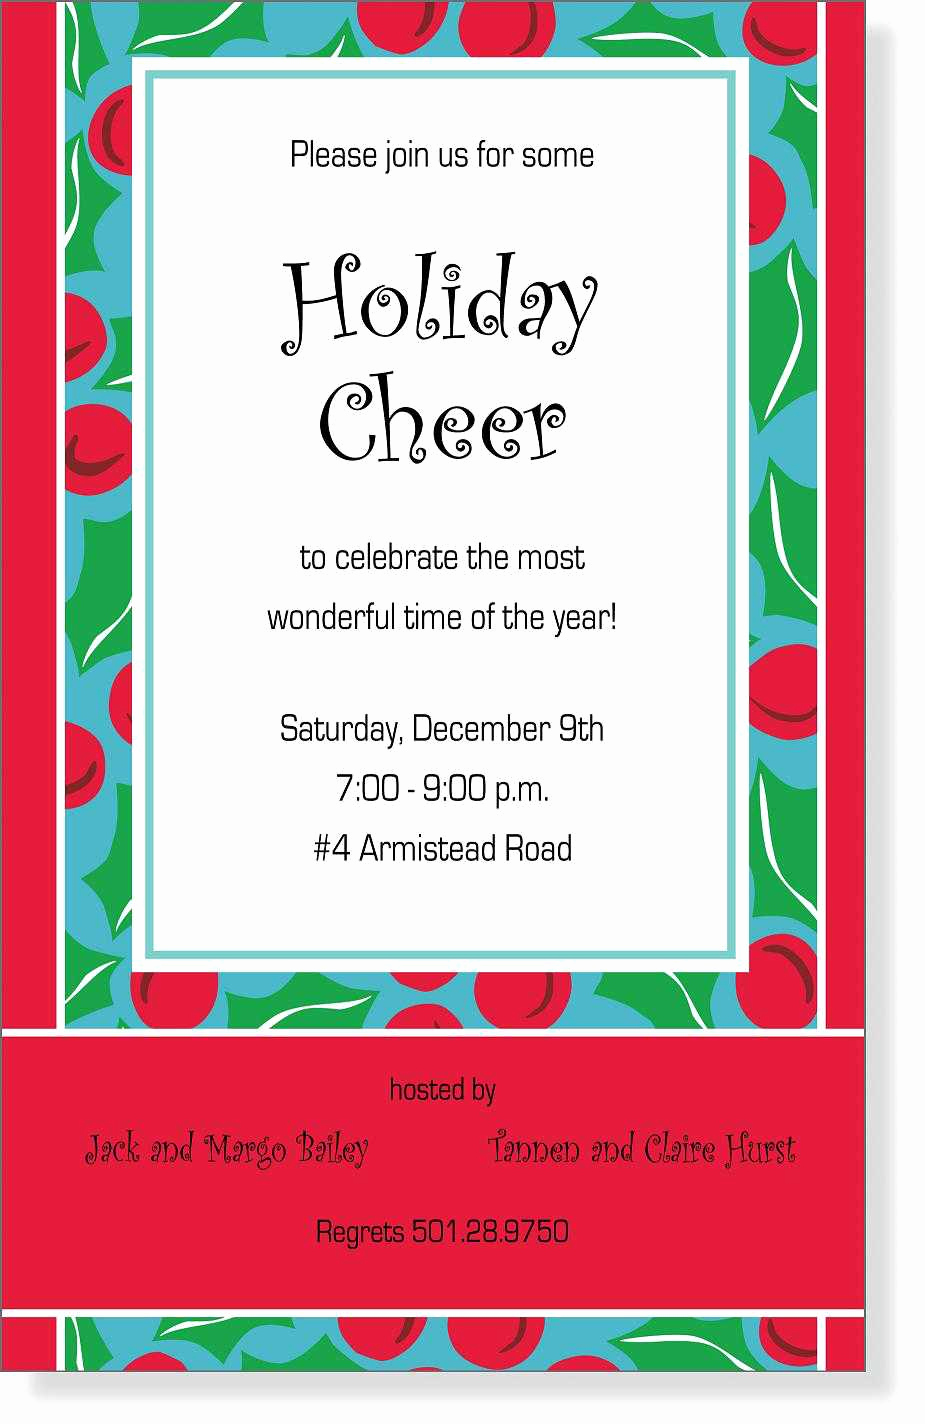 Christmas Open House Invitation Wording New Christmas Open House Invitations Christmas Open House